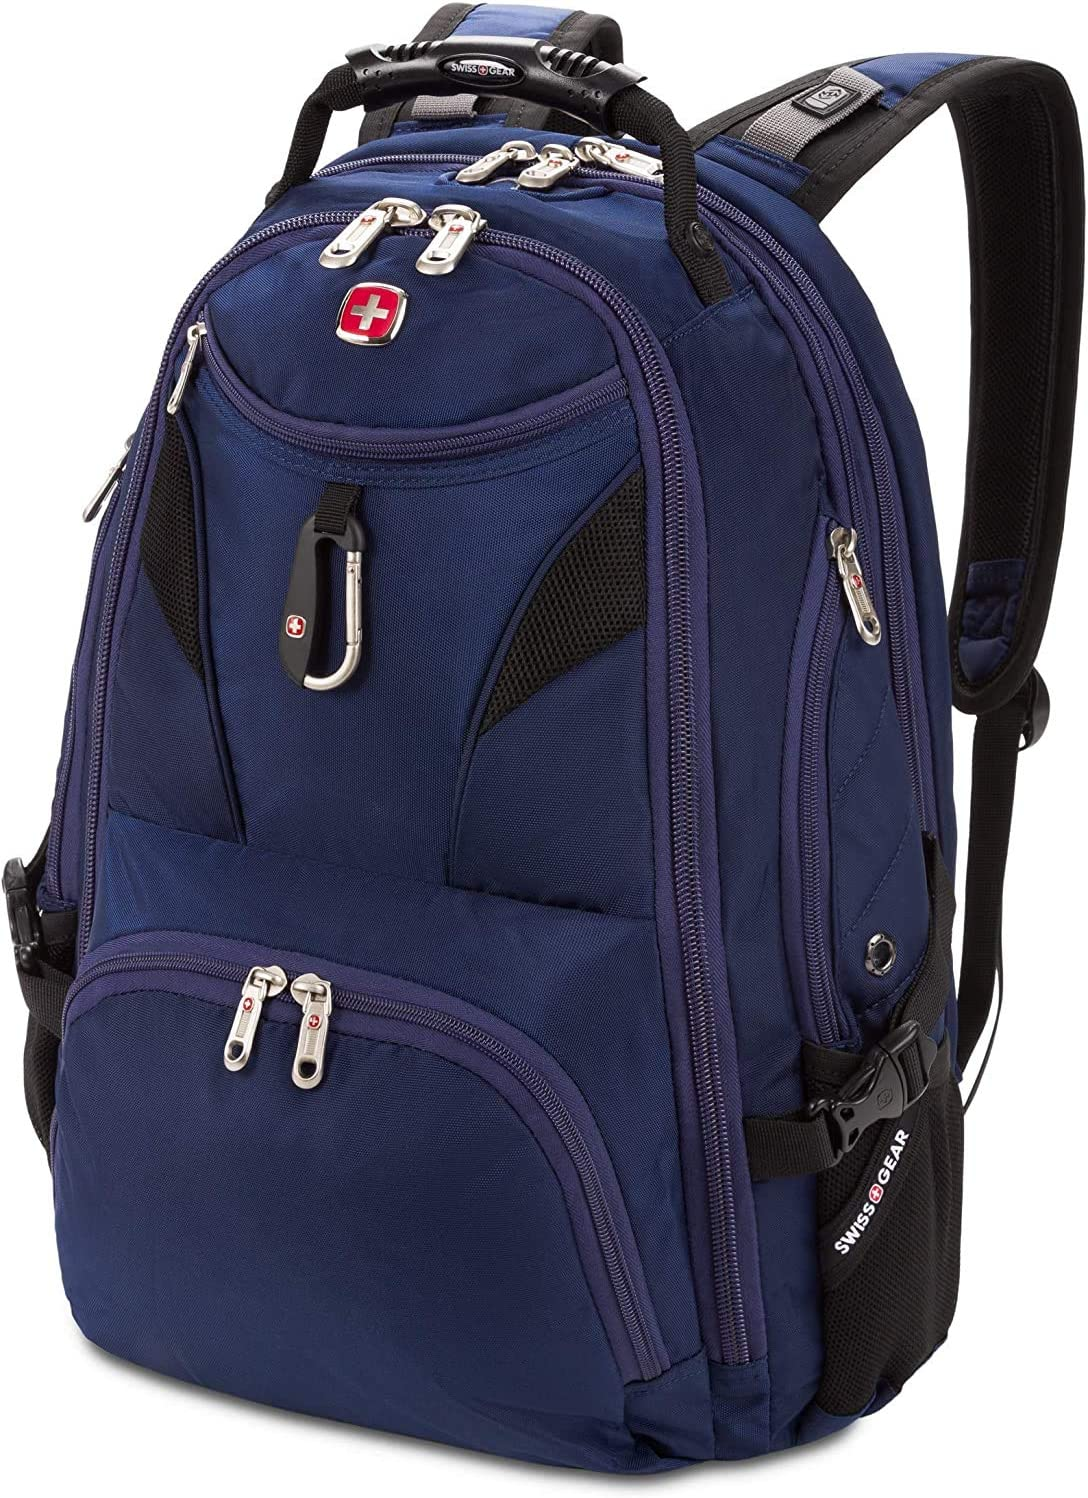 SWISSGEAR 5977 ScanSmart Laptop Backpack | Fits Most 17 Inch Laptops and Tablets | TSA Friendly Backpack | Ideal for Work, Travel, School, College, and Commuting (Navy)